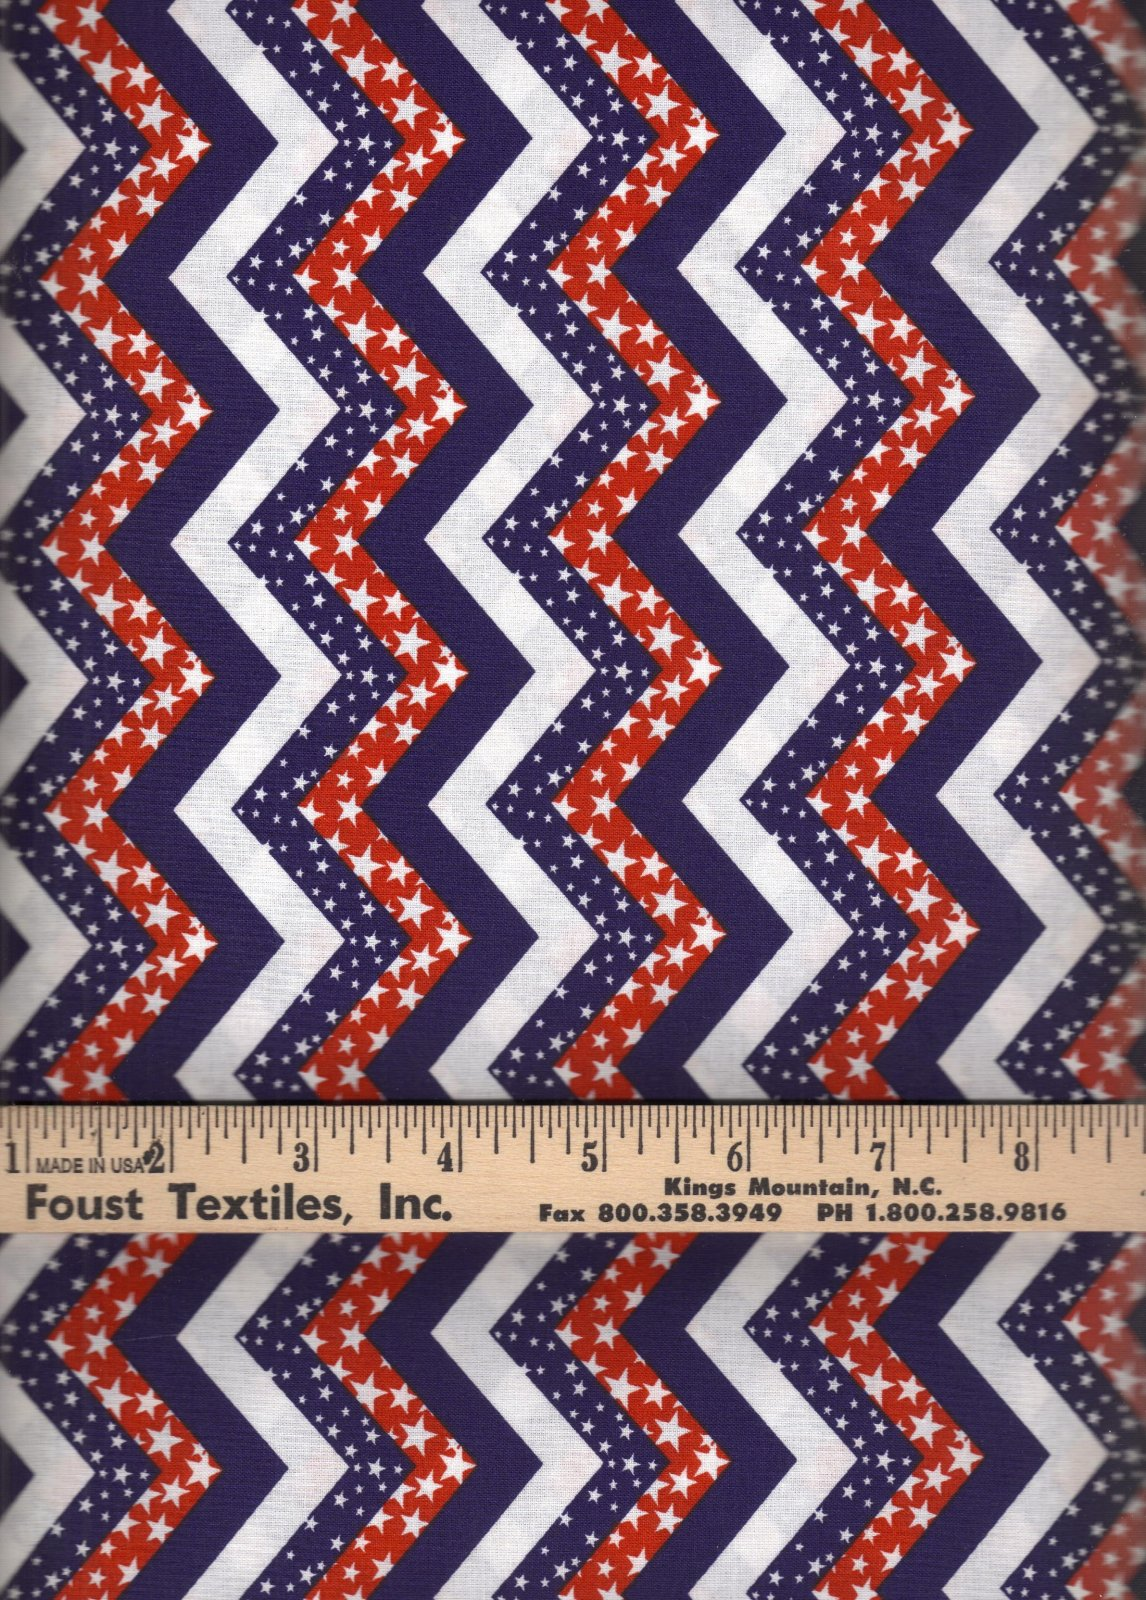 Made in the USA 48487 Chevron